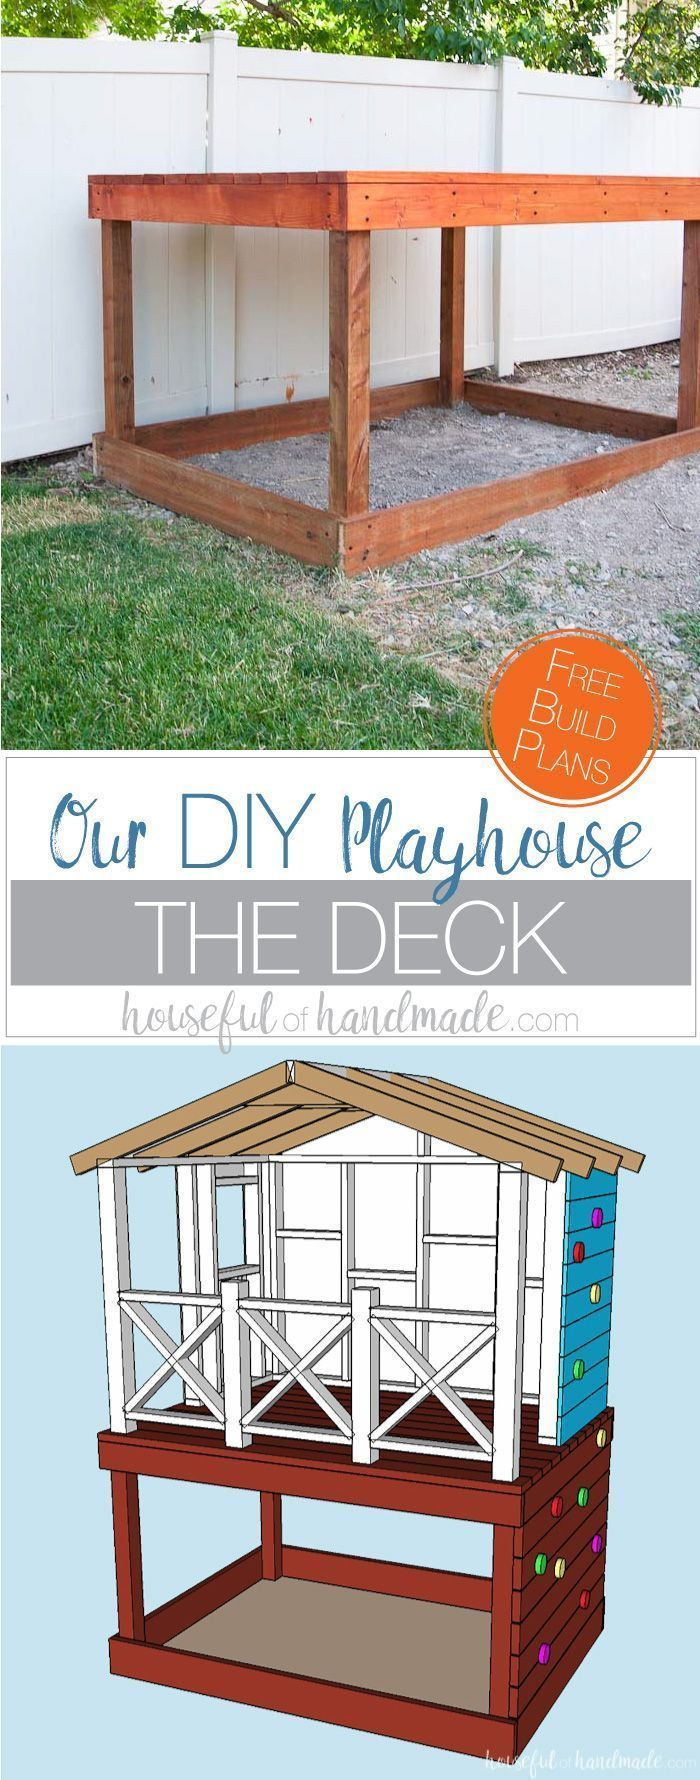 Even though our yard is small, we decided we still needed a DIY playhouse. Check out how we built the small playhouse for our kids, on a budget, starting with the deck. This project was so easy and now we can see the playhouse starting to take shape. Housefulofhandmade.com | How to Build a Playhouse | DIY Swing Set | Small Playhouse | Playhouse Build Plans #outdoorplayhousediy #playhousebuildingplans